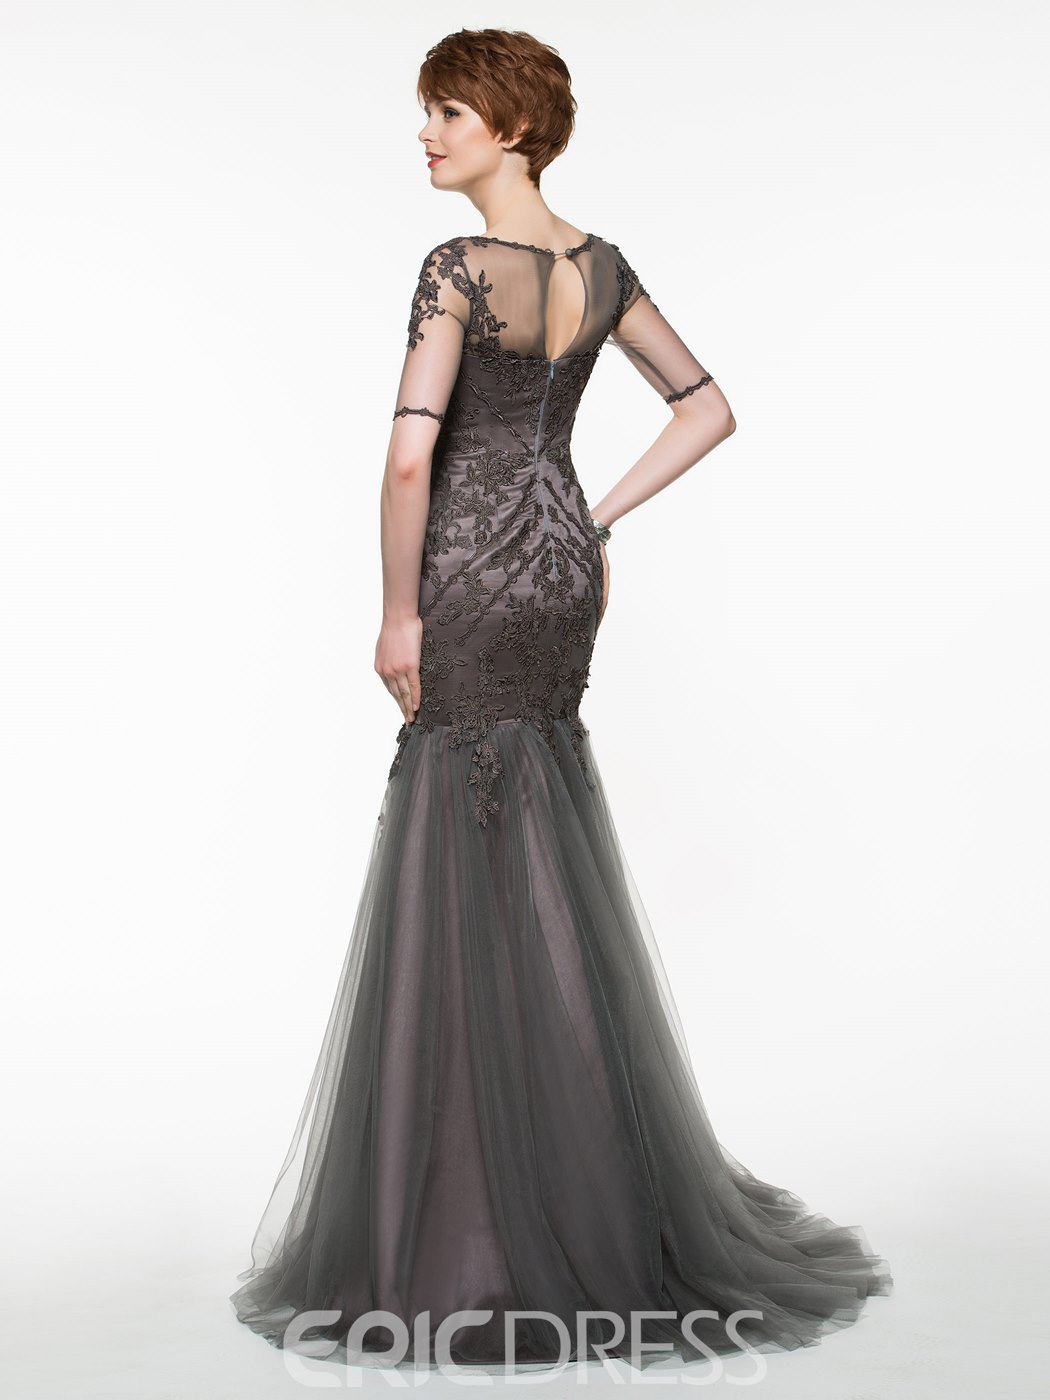 Ericdress Beautiful Long Mermaid Mother Of The Bride Dress With Sleeves